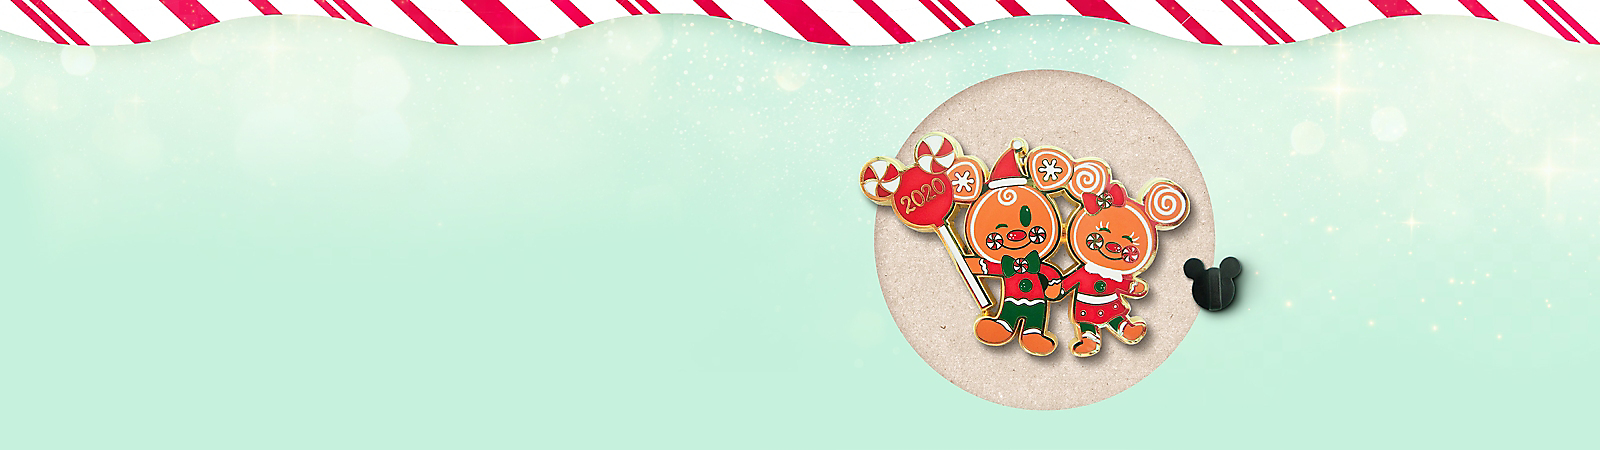 Background image of Spread Cheer with a Collector Pin